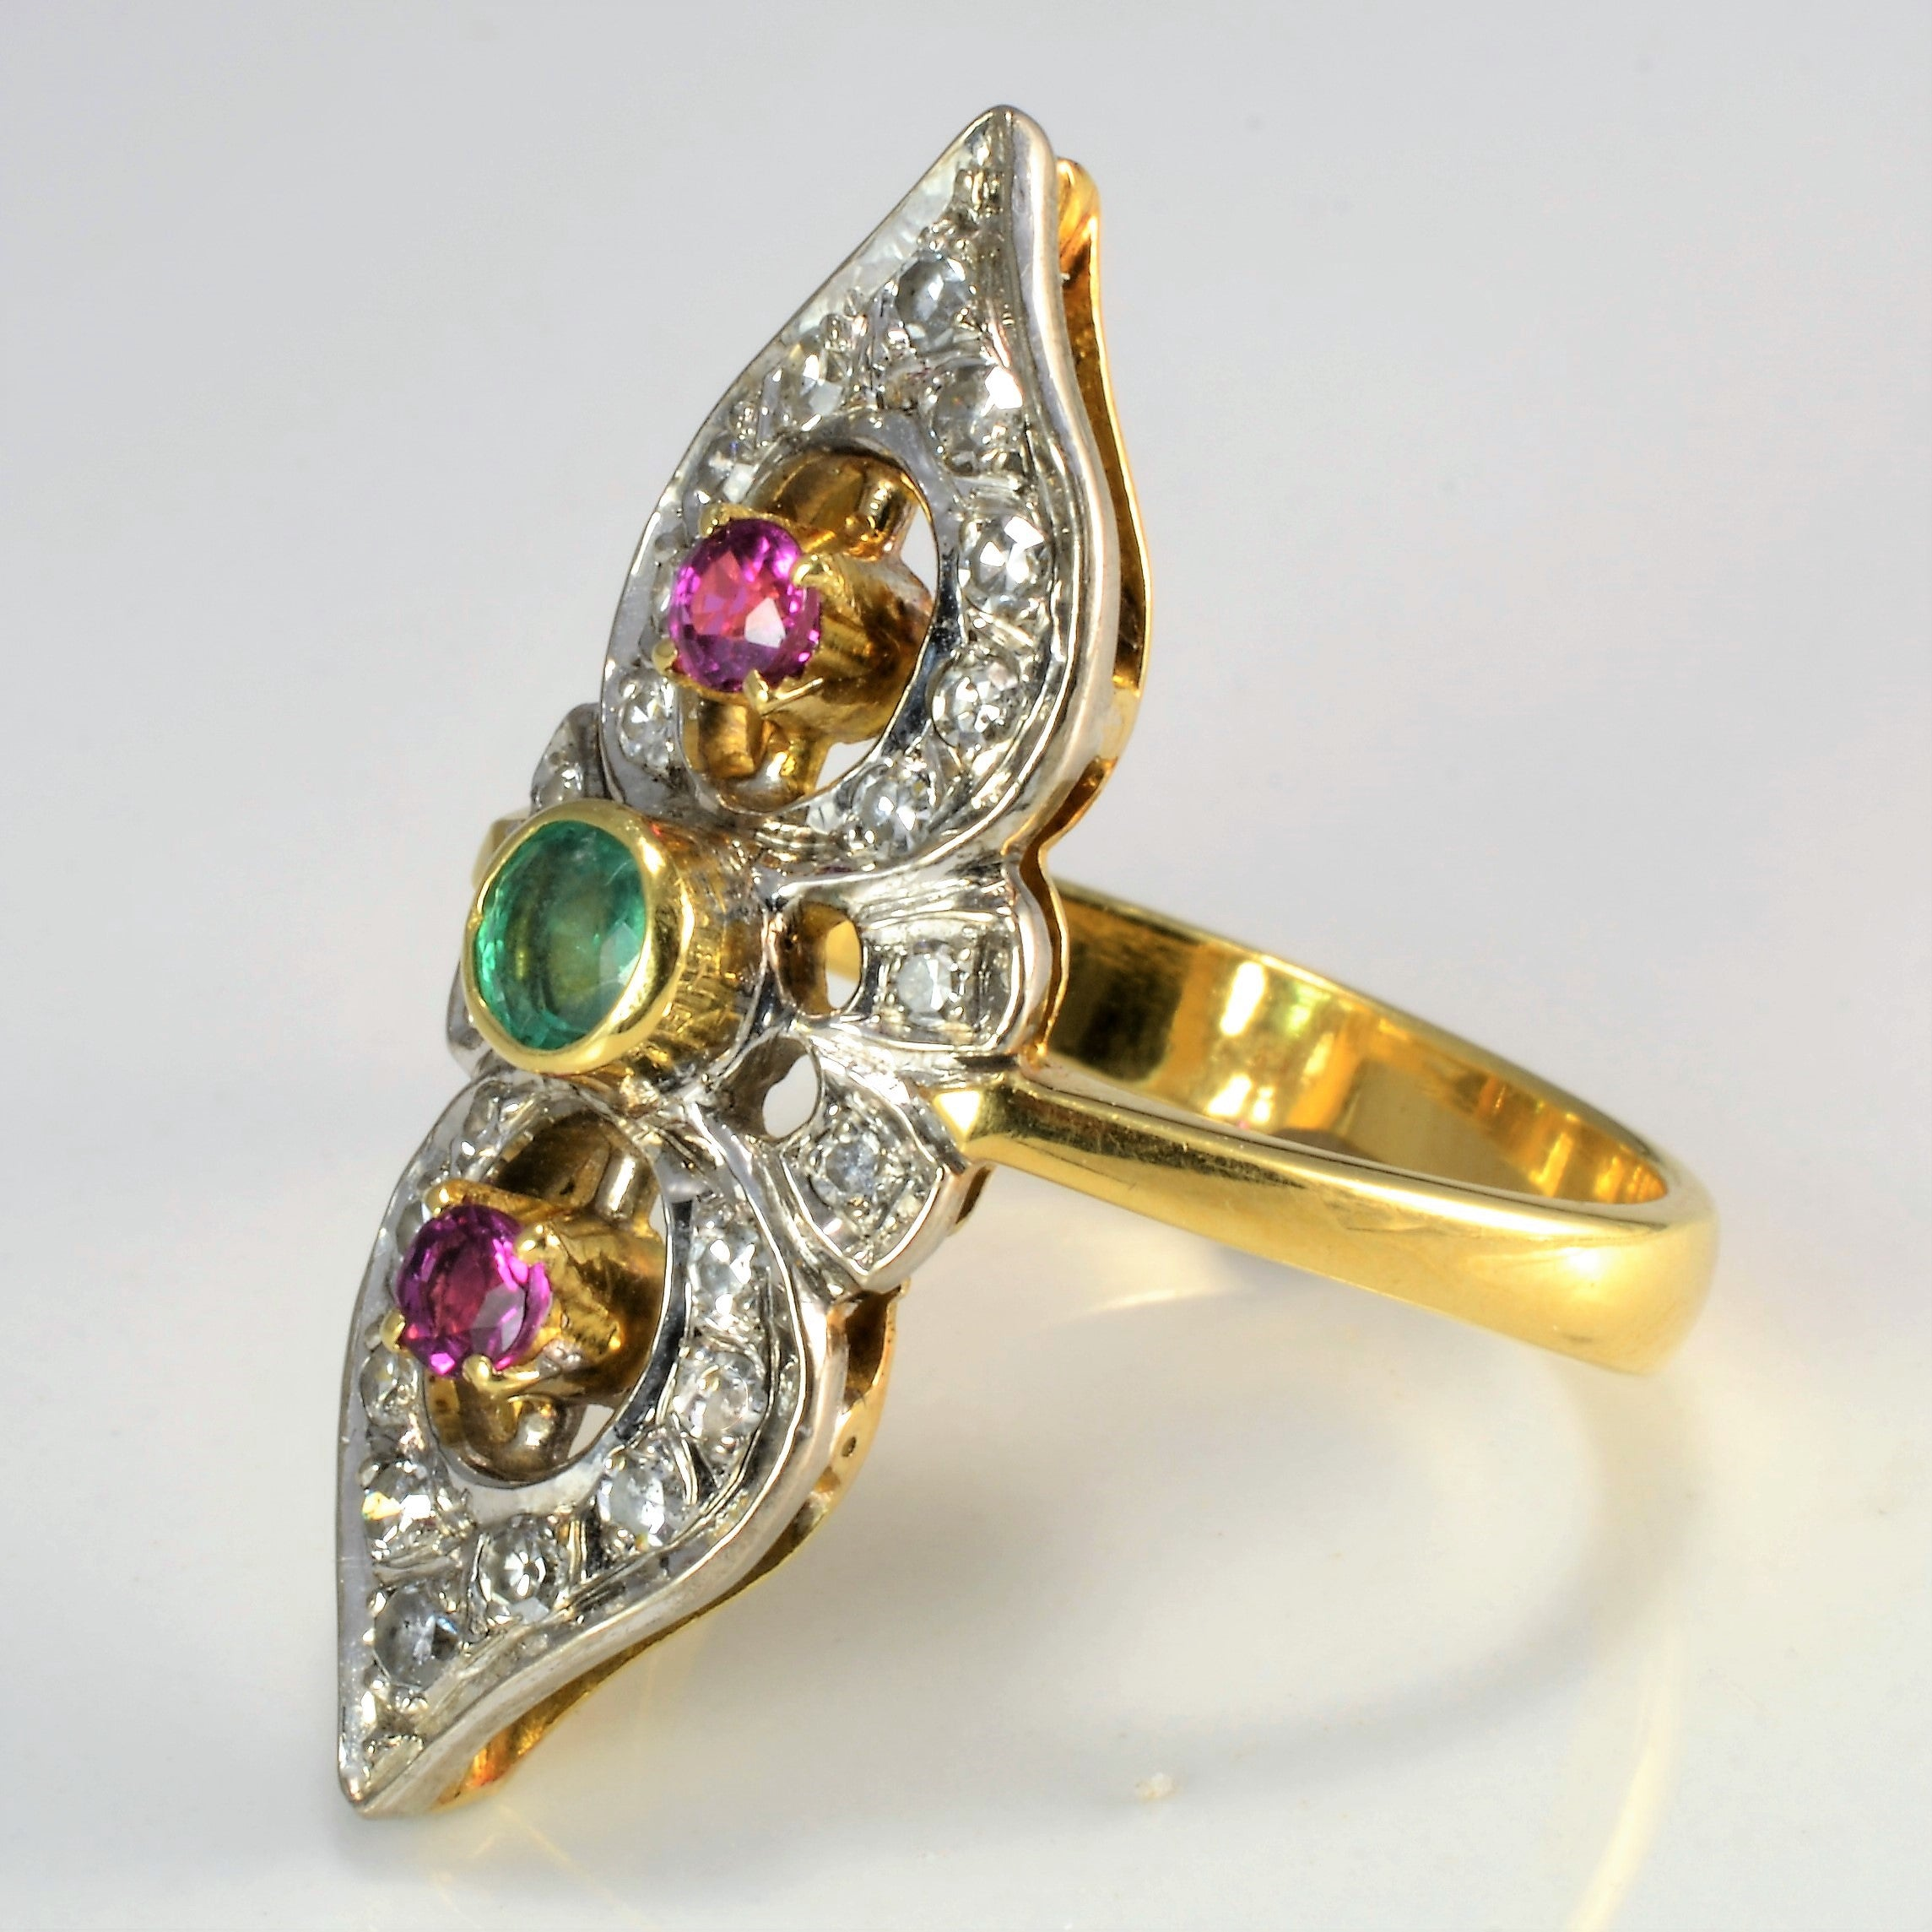 Vintage Art Deco Multi- Gem Ladies Ring | 0.40 ctw, SZ 9.5 |